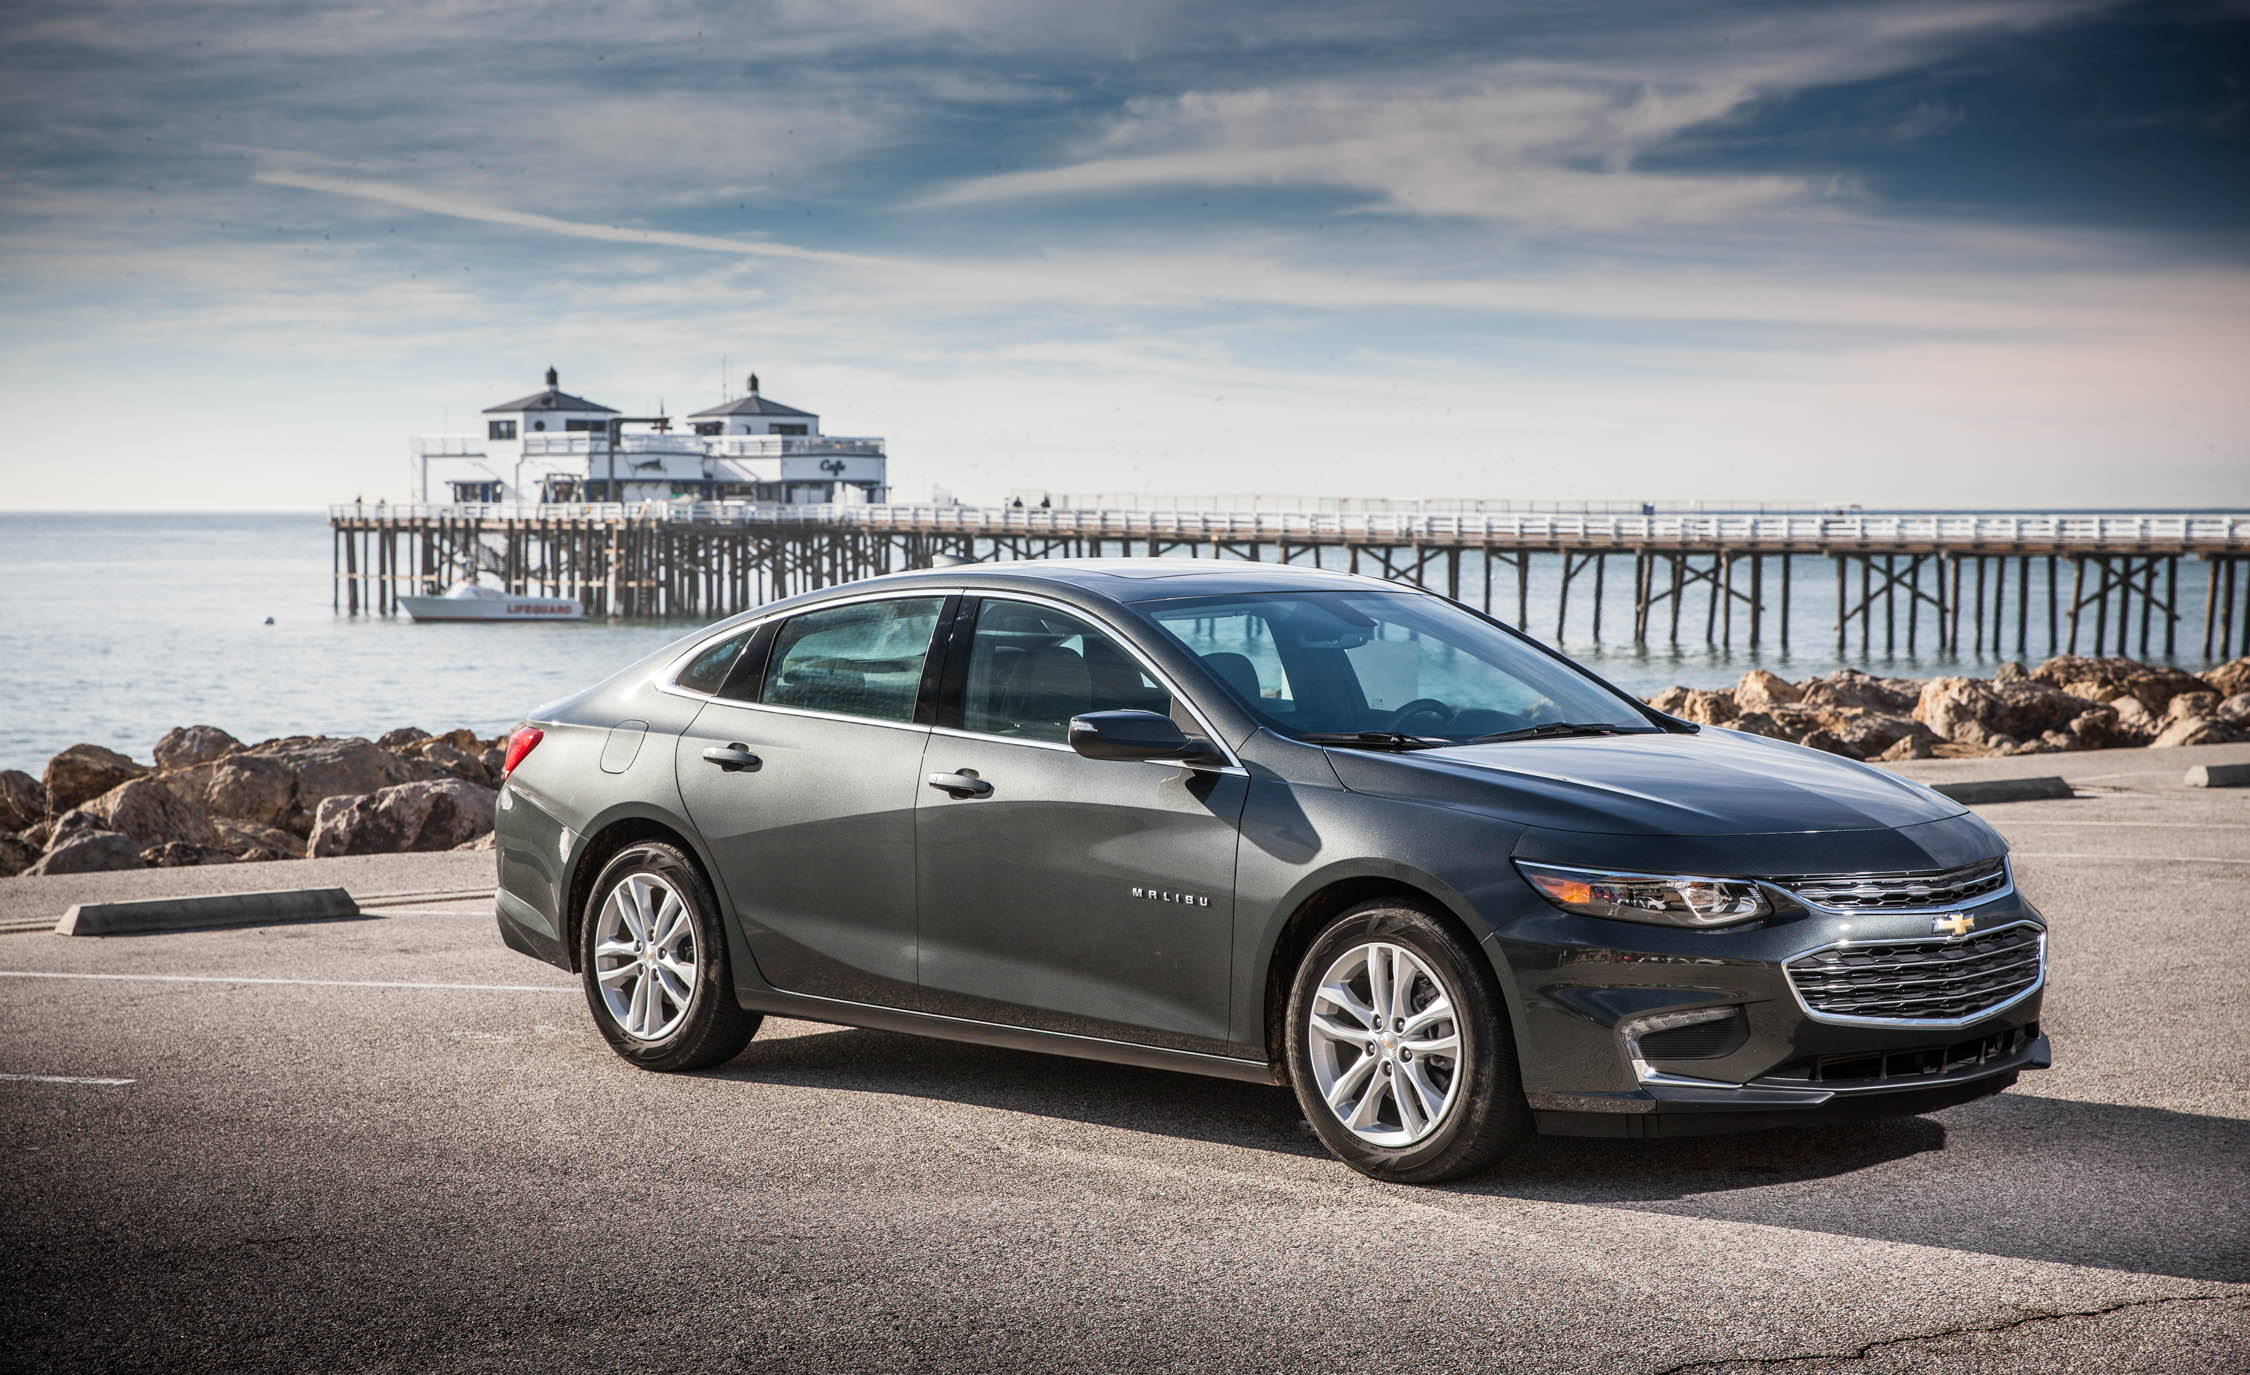 2016 Chevrolet Malibu LT Exterior Full Front and Side